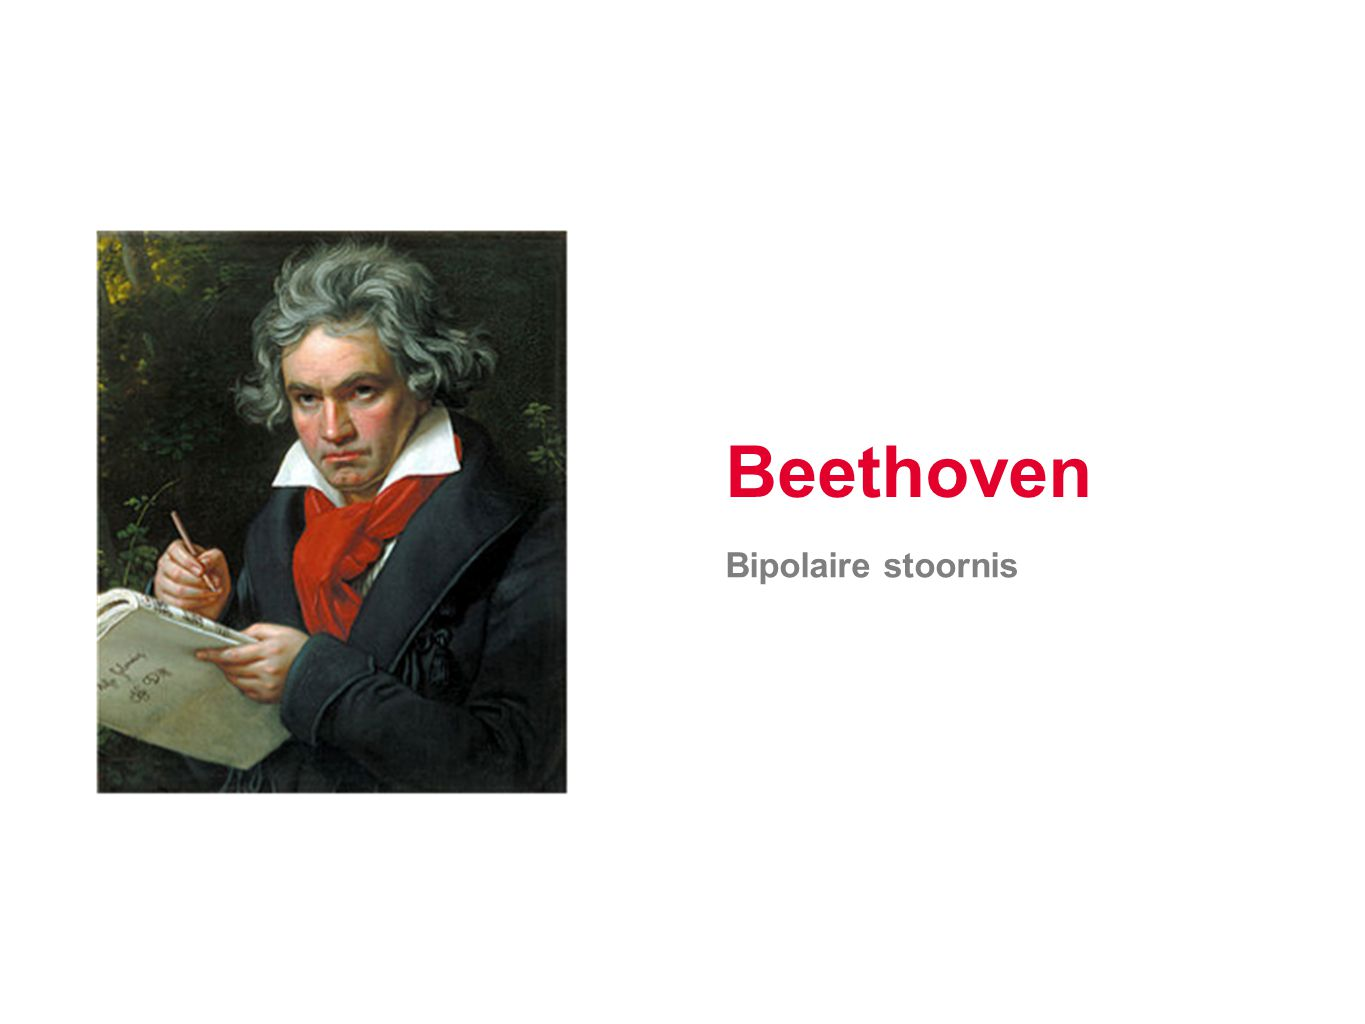 Beethoven Bipolaire stoornis